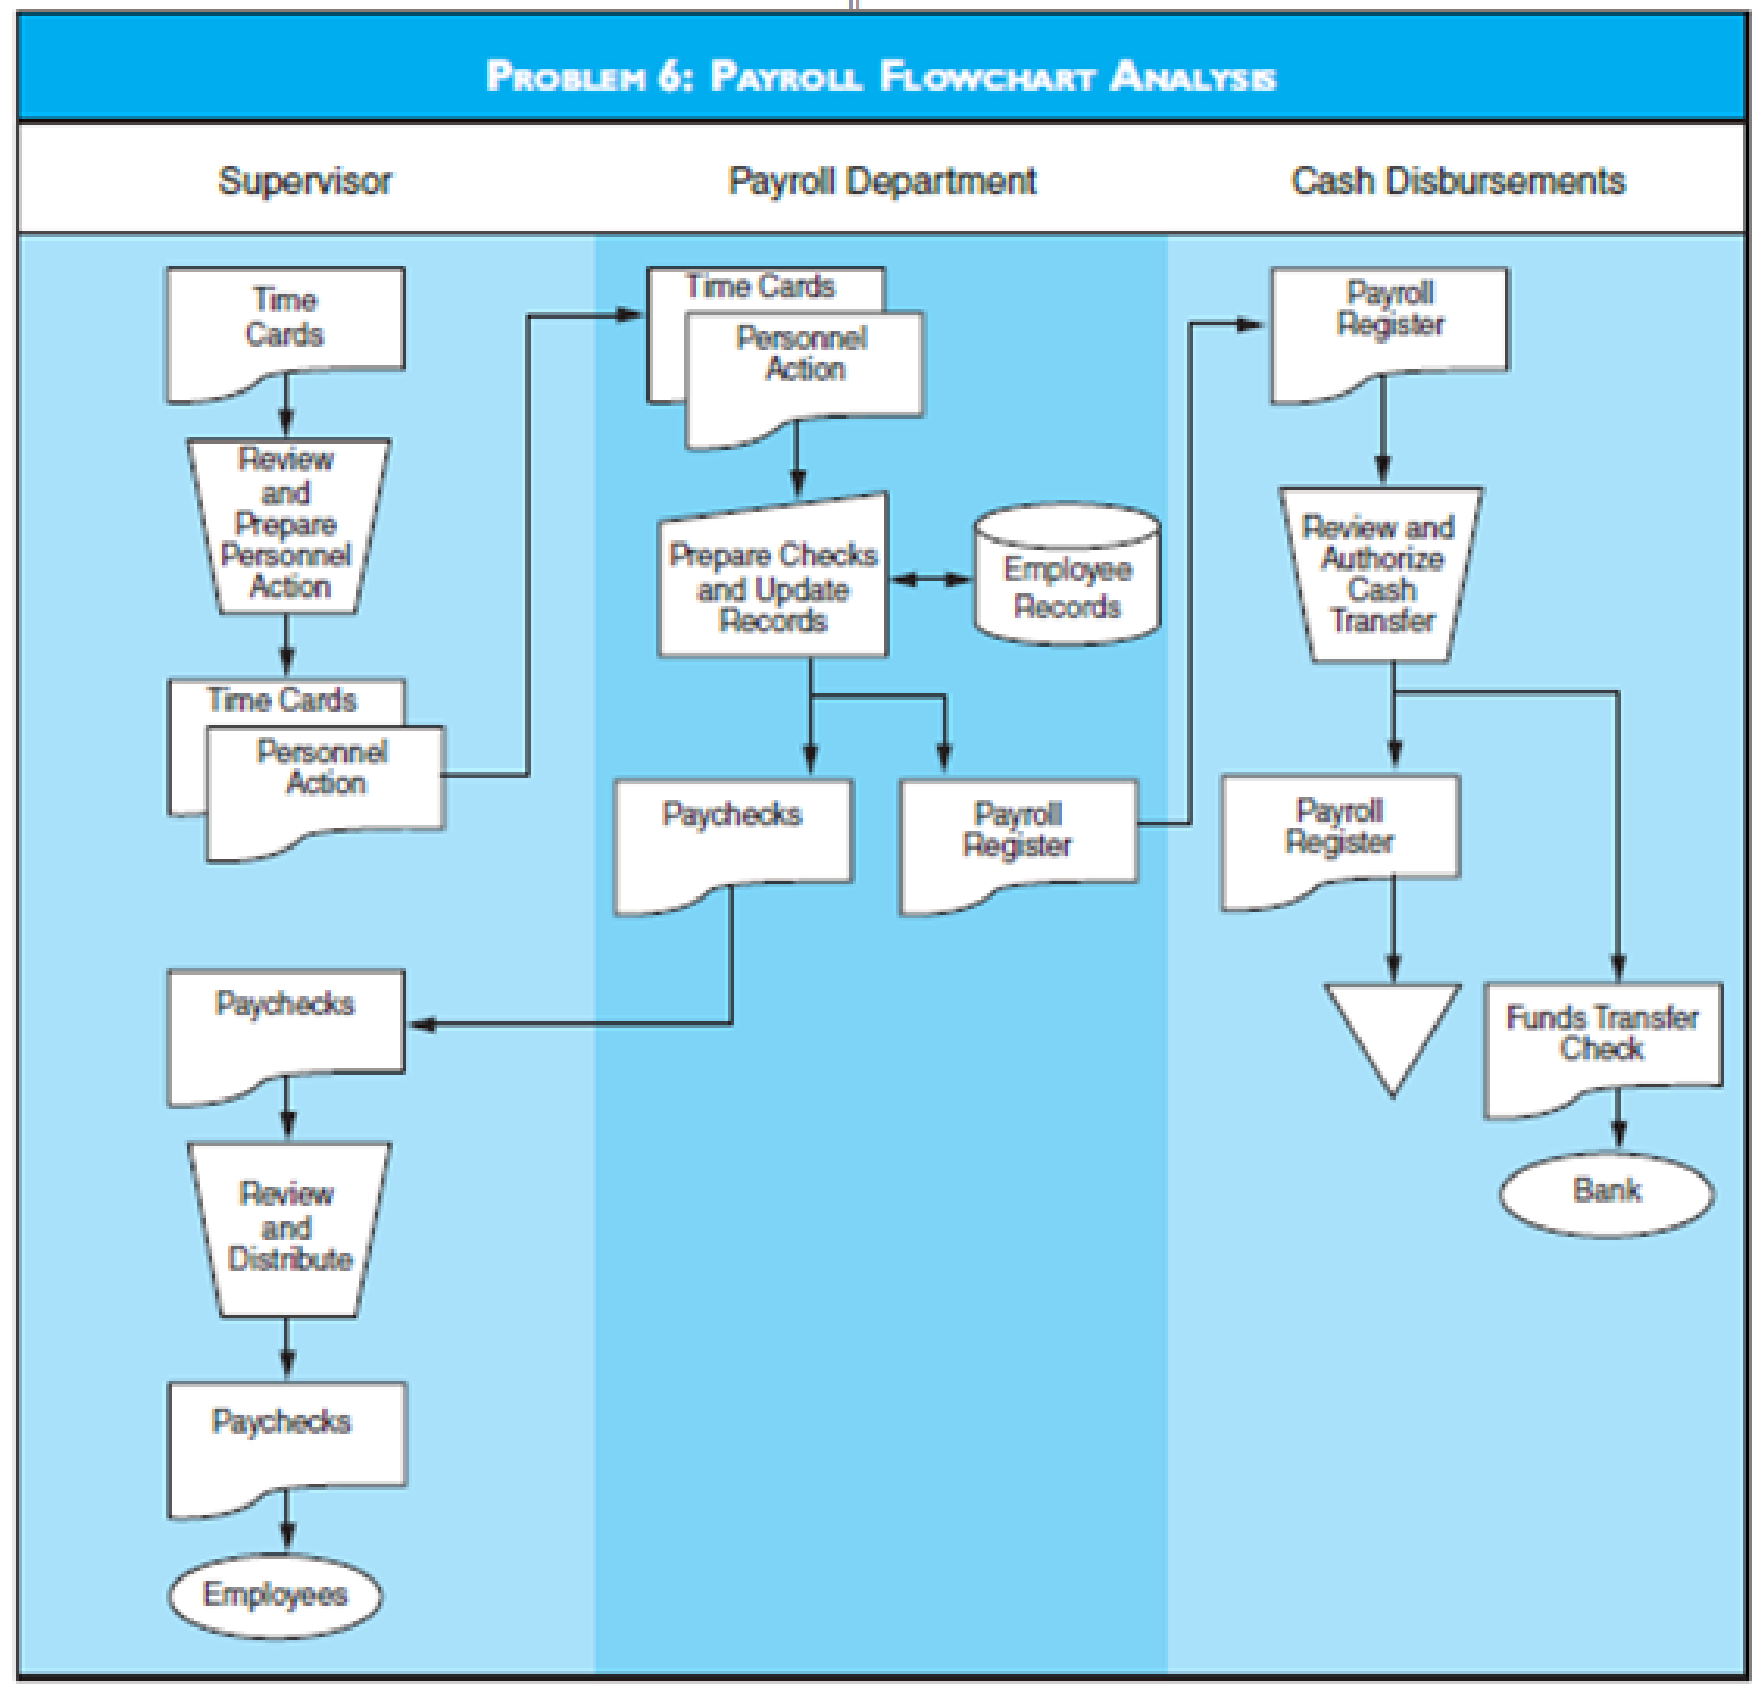 System Flowchart: PAYROLL FLOWCHART ANALYSIS Discuss The Risks Depicted By